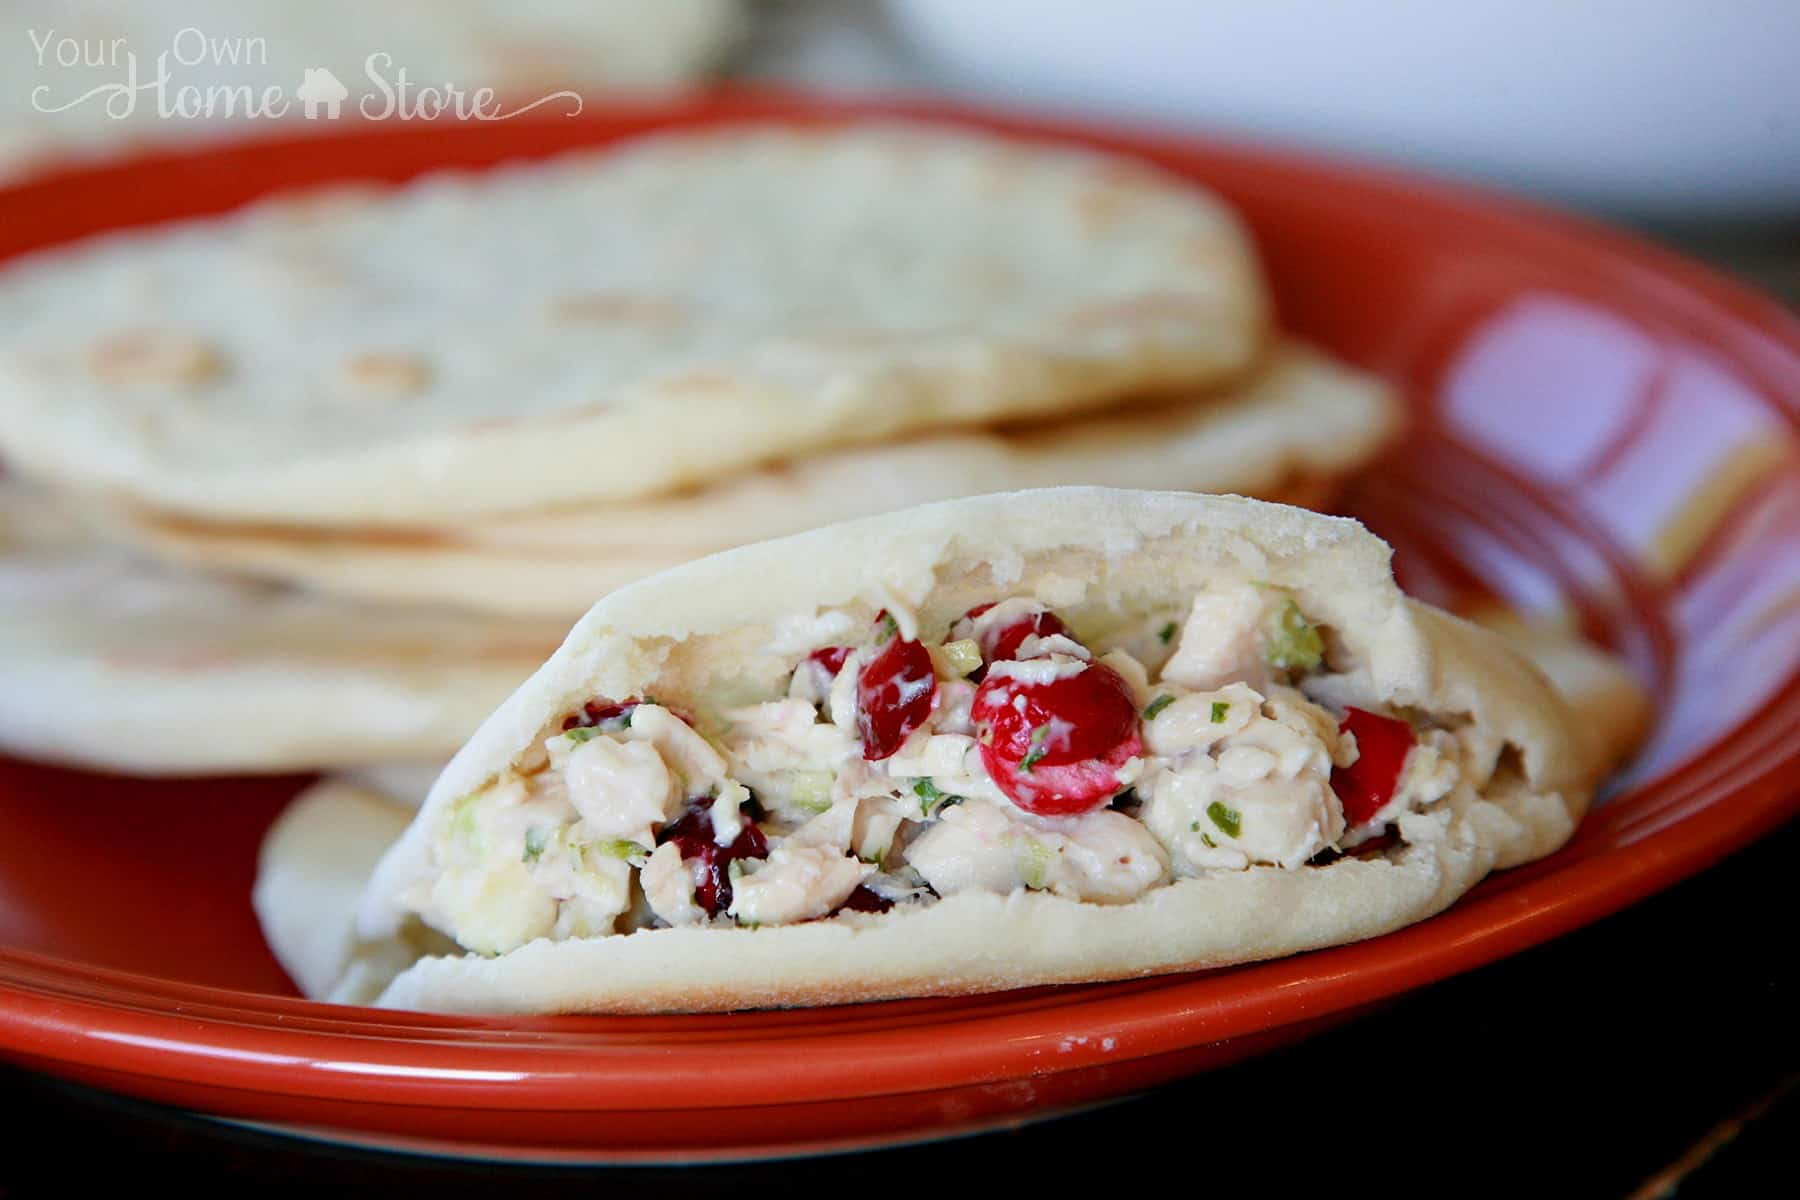 Quick and Easy Chicken Salad on Pita Bread from Simple Family Preparedness https://simplefamilypreparedness.com/chicken-salad/